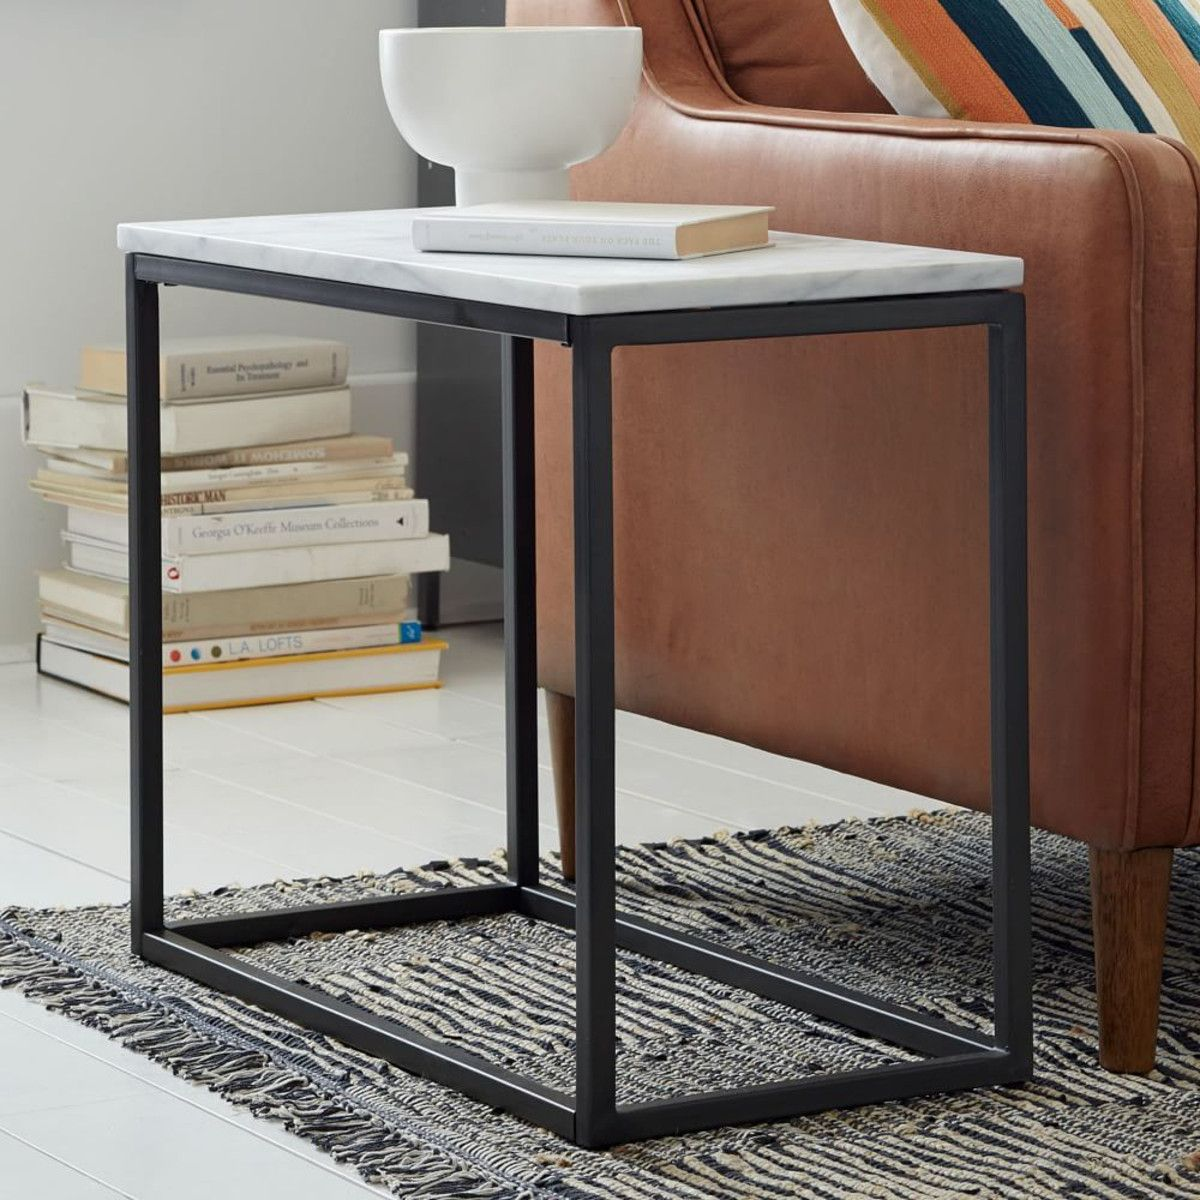 The Slim Profile Of Box Frame Side Table Lets You Save Precious E In Smaller Living Rooms And Bedrooms Its Steel Base Solid Marble Top Add Some